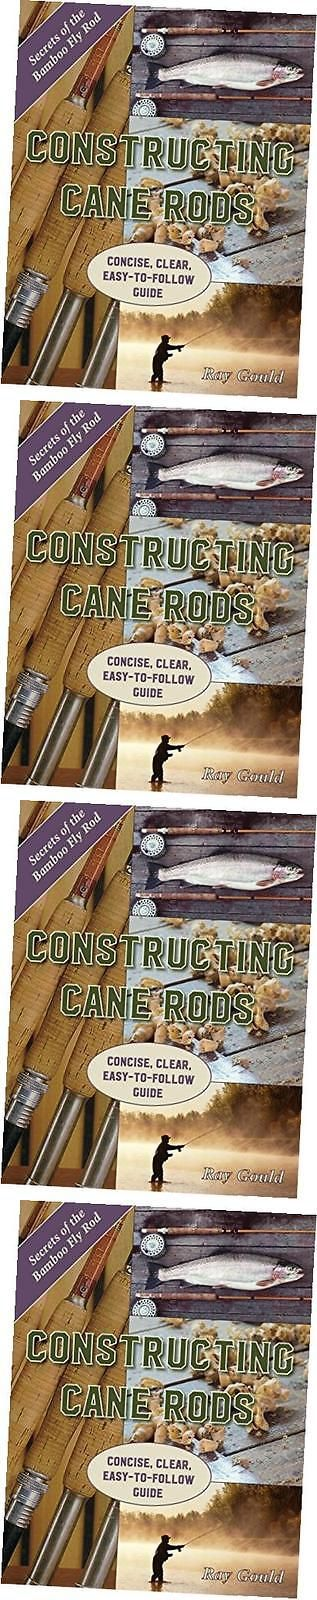 Books and Video 62155: Constructing Cane Rods: Secrets Of The Bamboo Fly Rod: Secrets Of The Bamboo Fly -> BUY IT NOW ONLY: $30.51 on eBay!